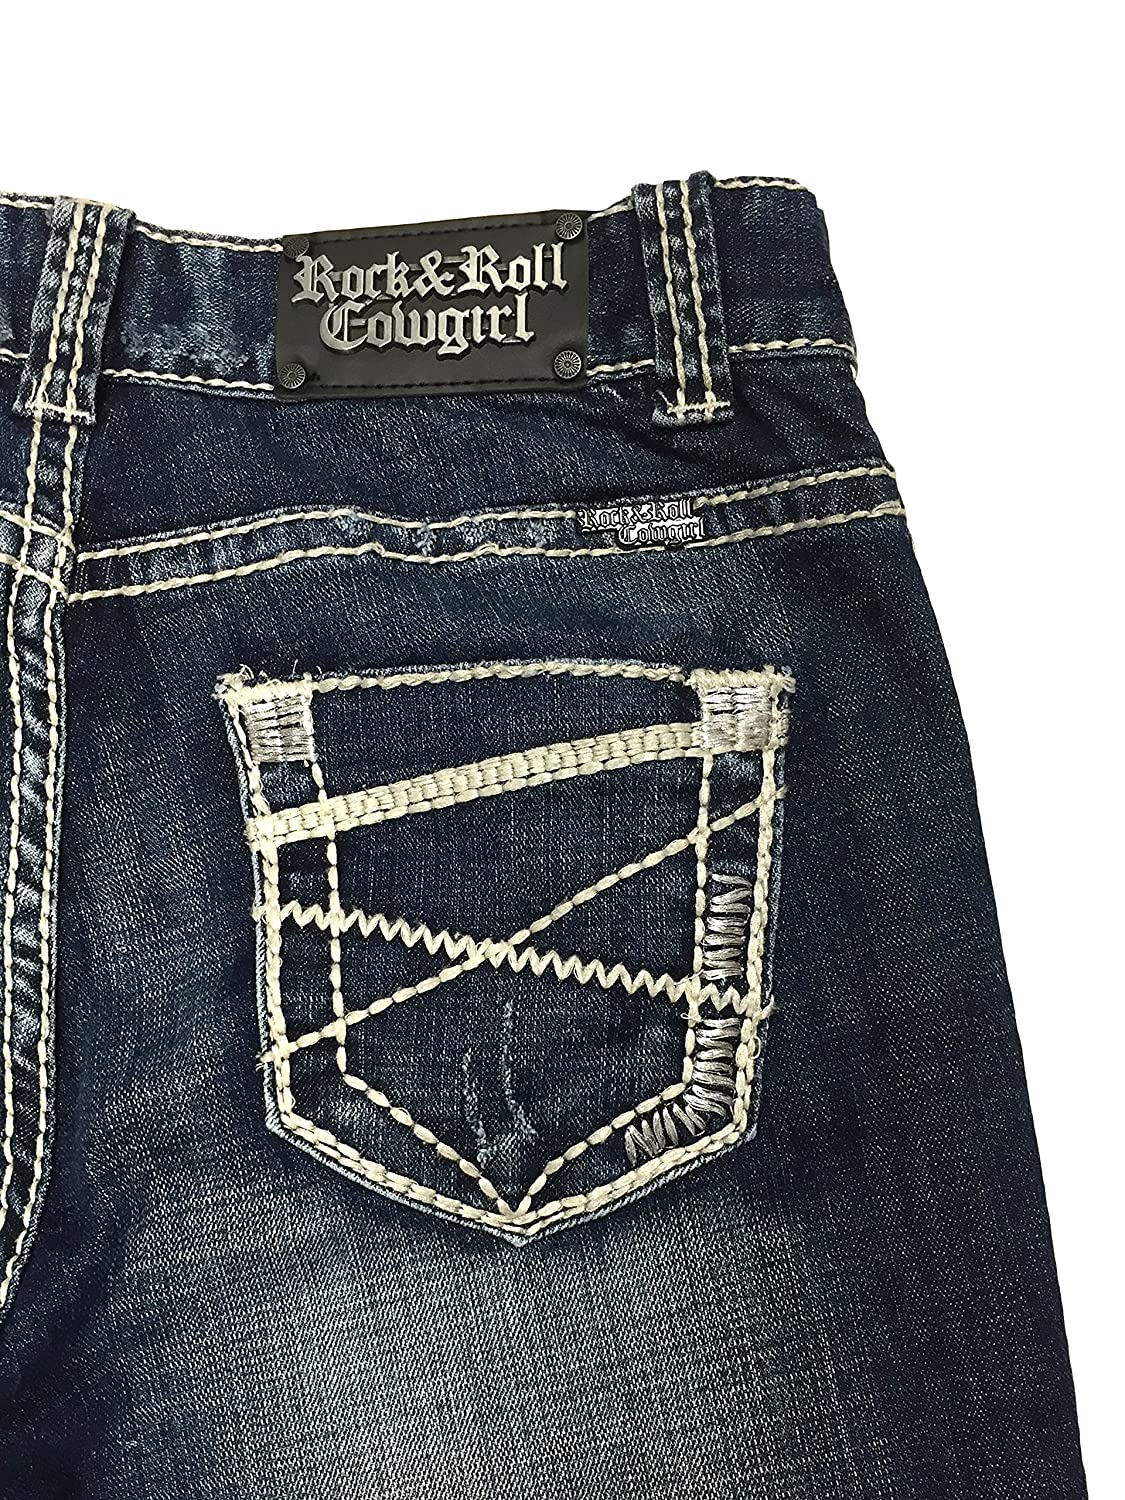 Rock and Roll Cowgirl W1-2237 Embroidered Flat Pocket Jeans